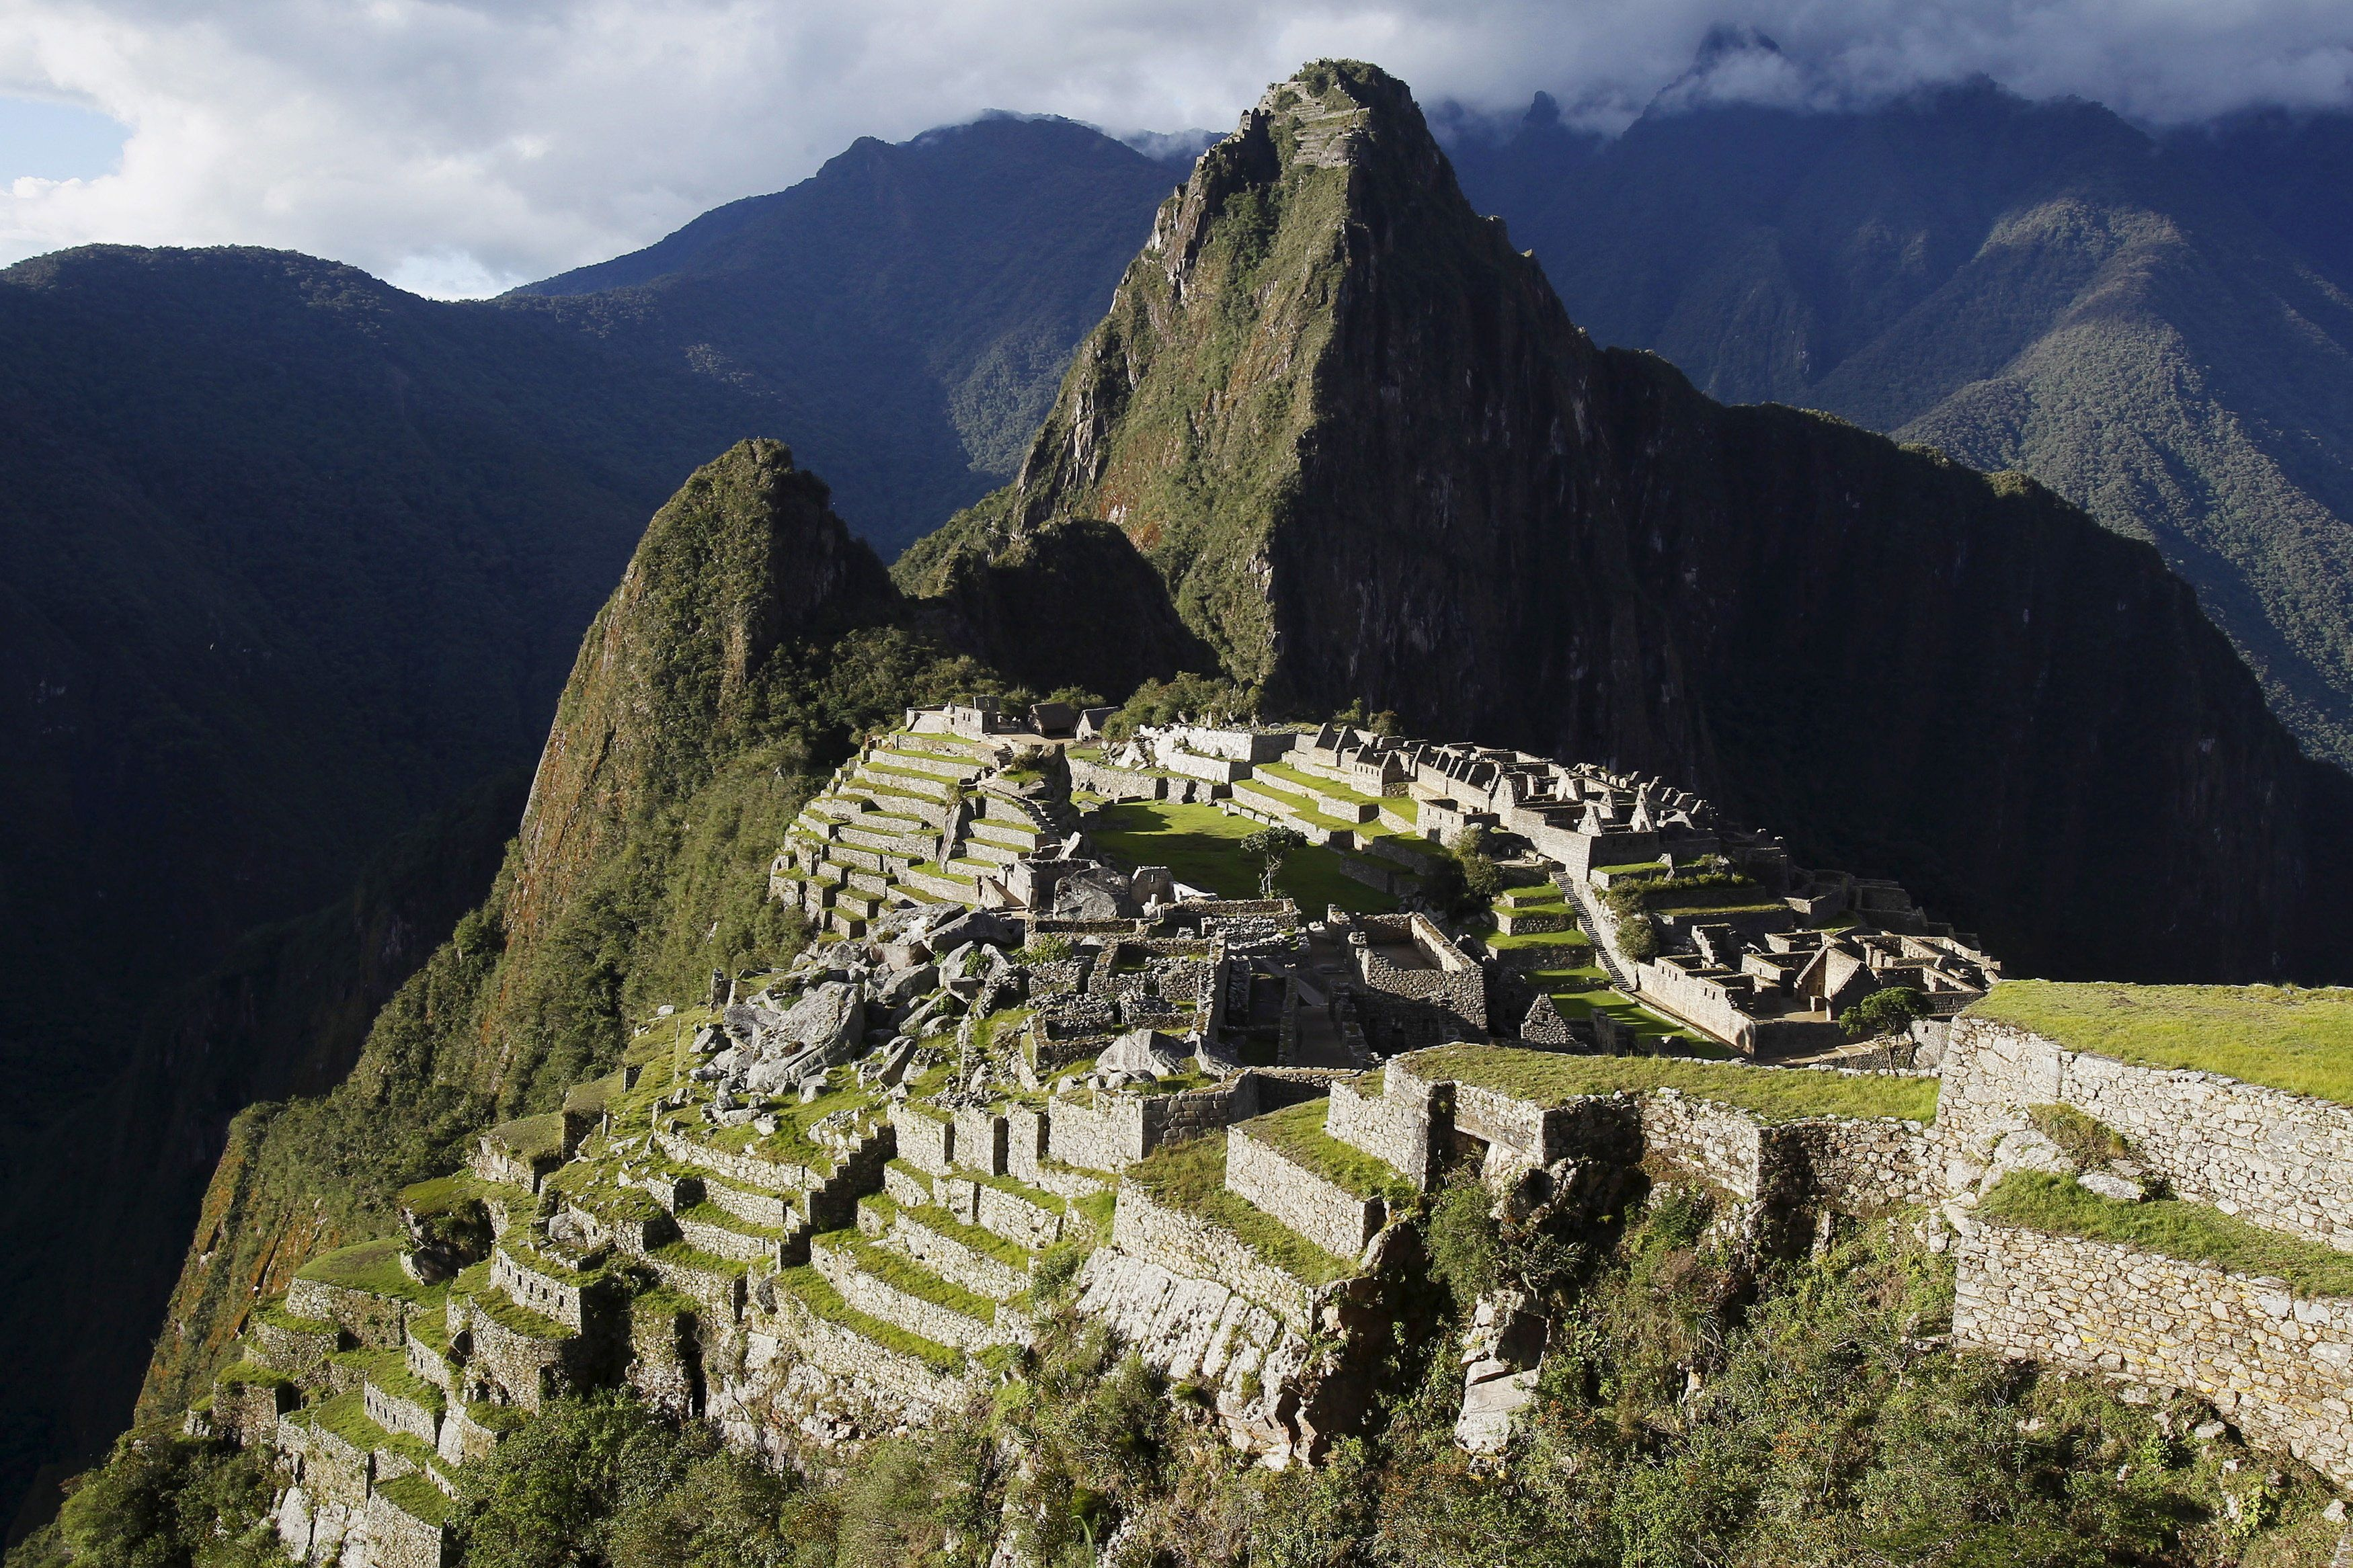 A general view of the Inca citadel of Machu Picchu is seen in Cusco, Peru, in this December 2, 2014 file photo. REUTERS/Enrique Castro-Mendivil/Files